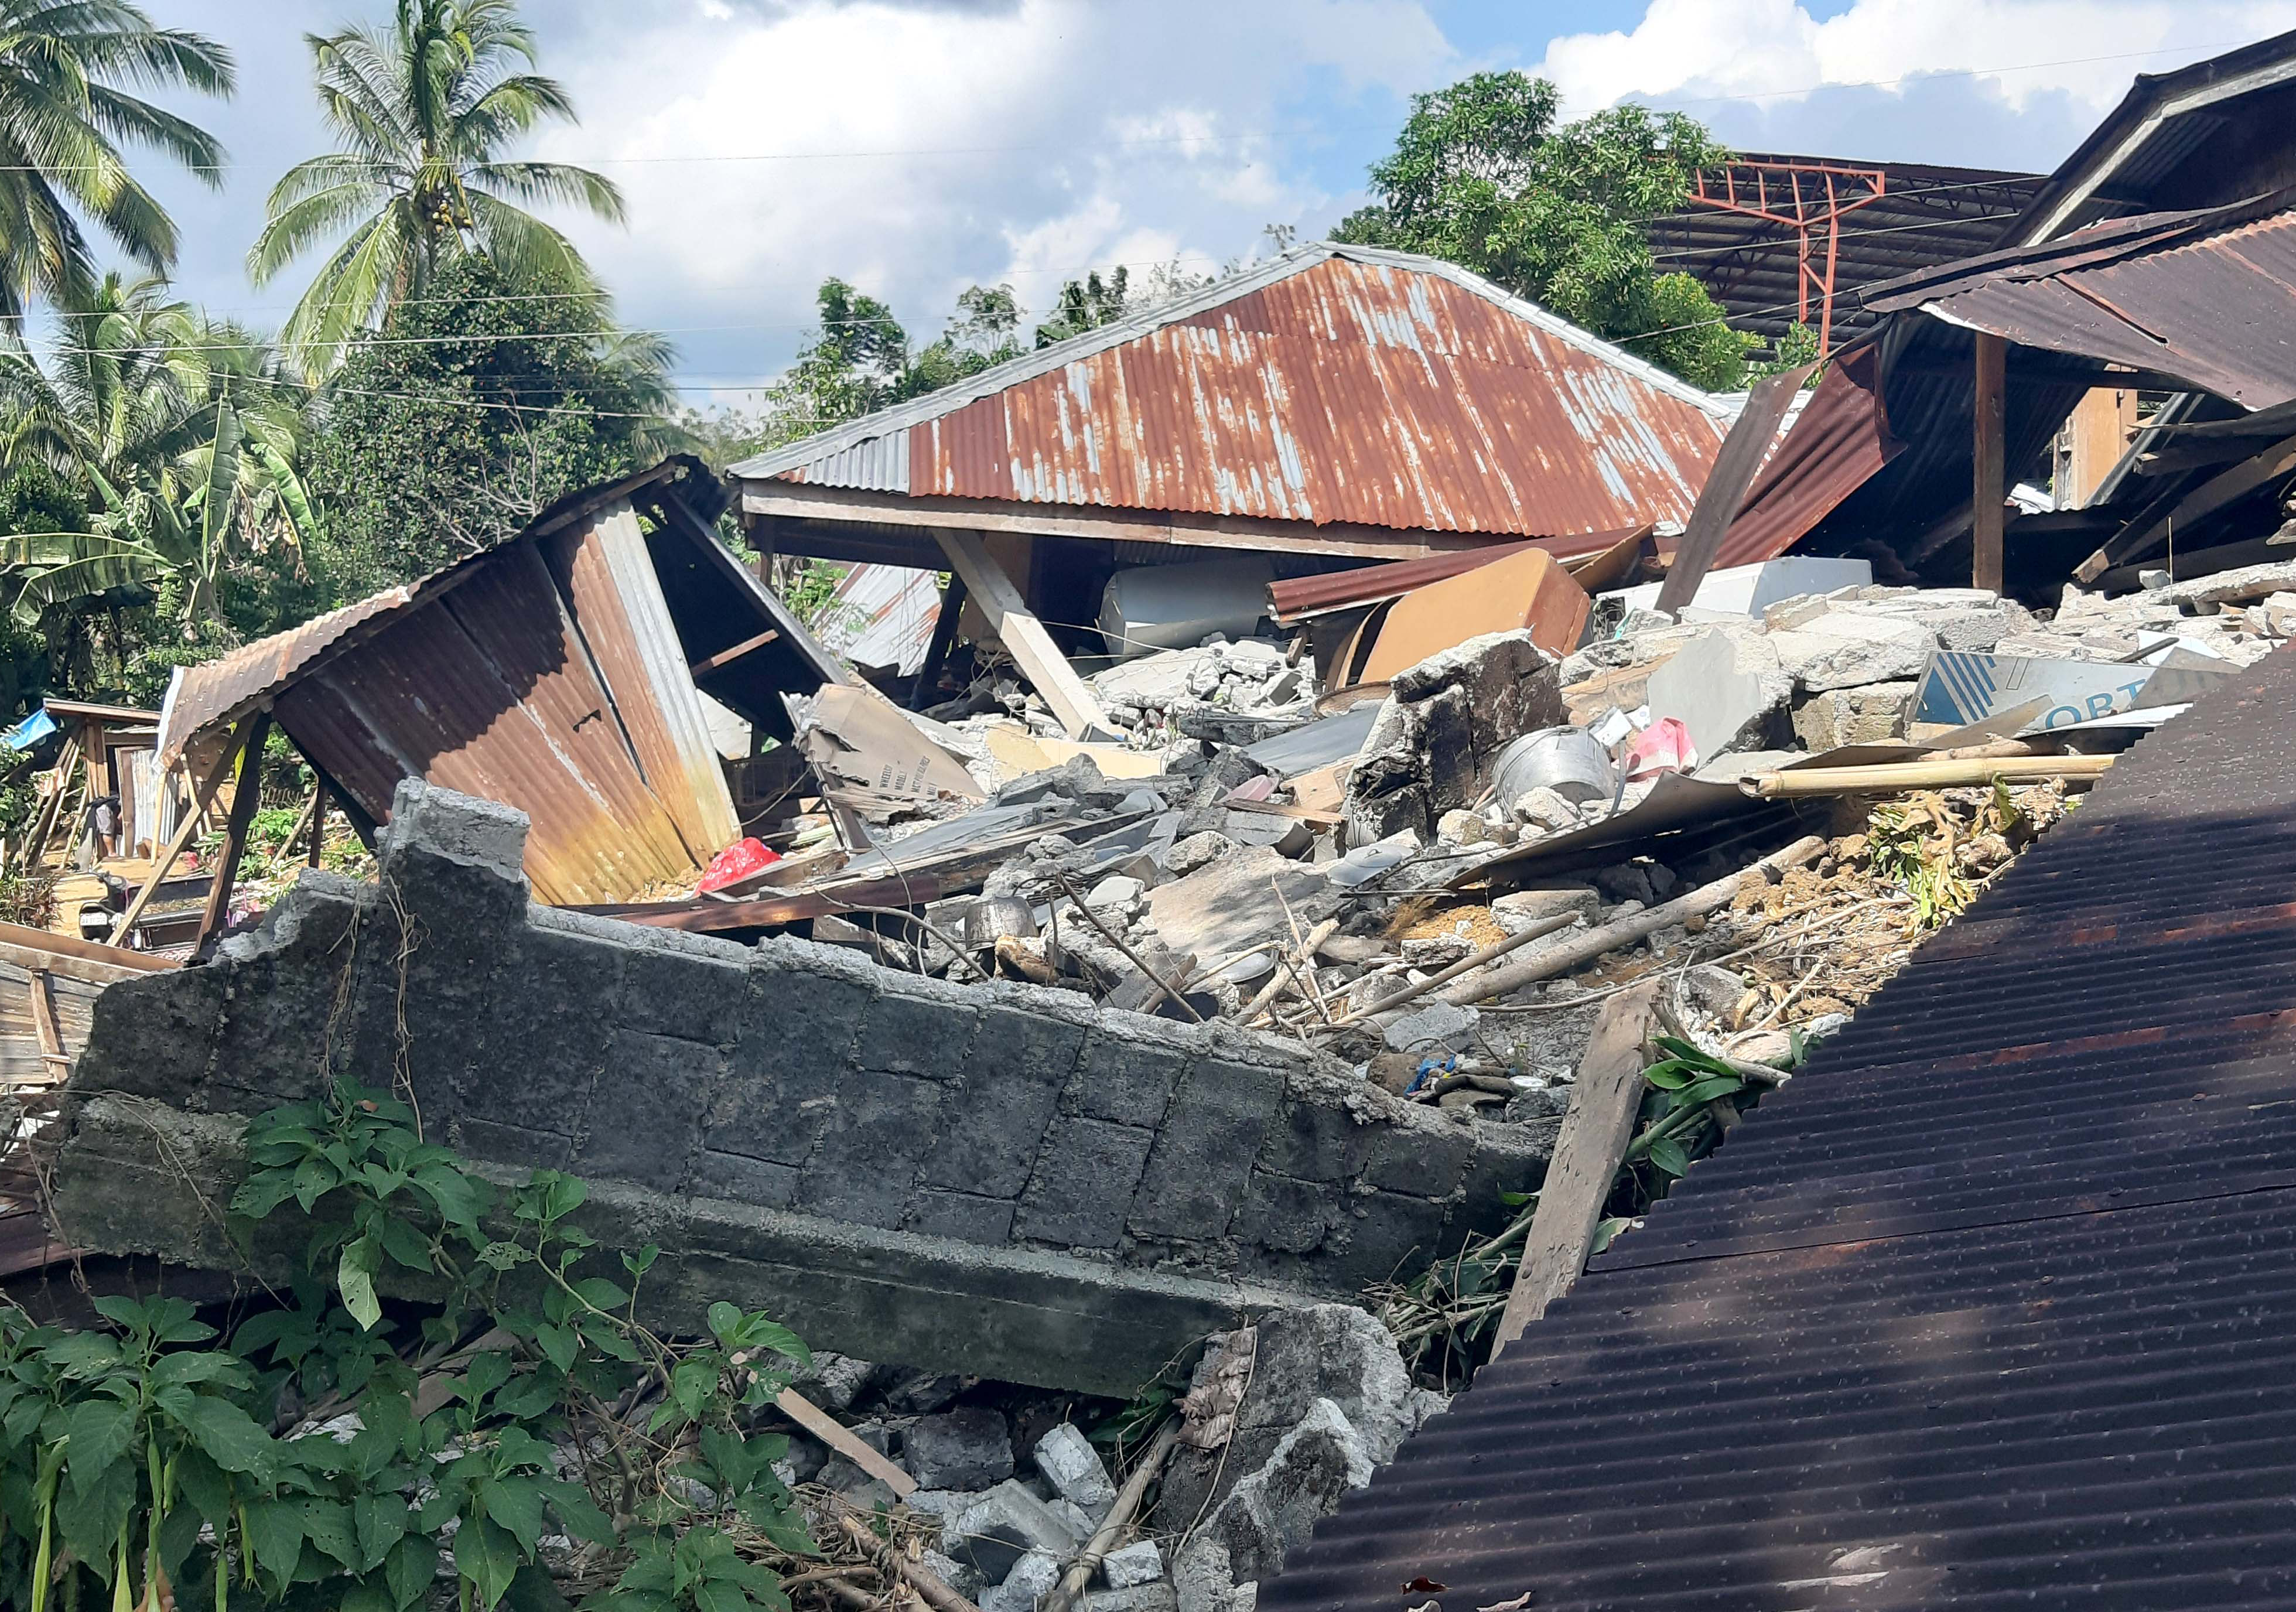 A destroyed house with rubble around it